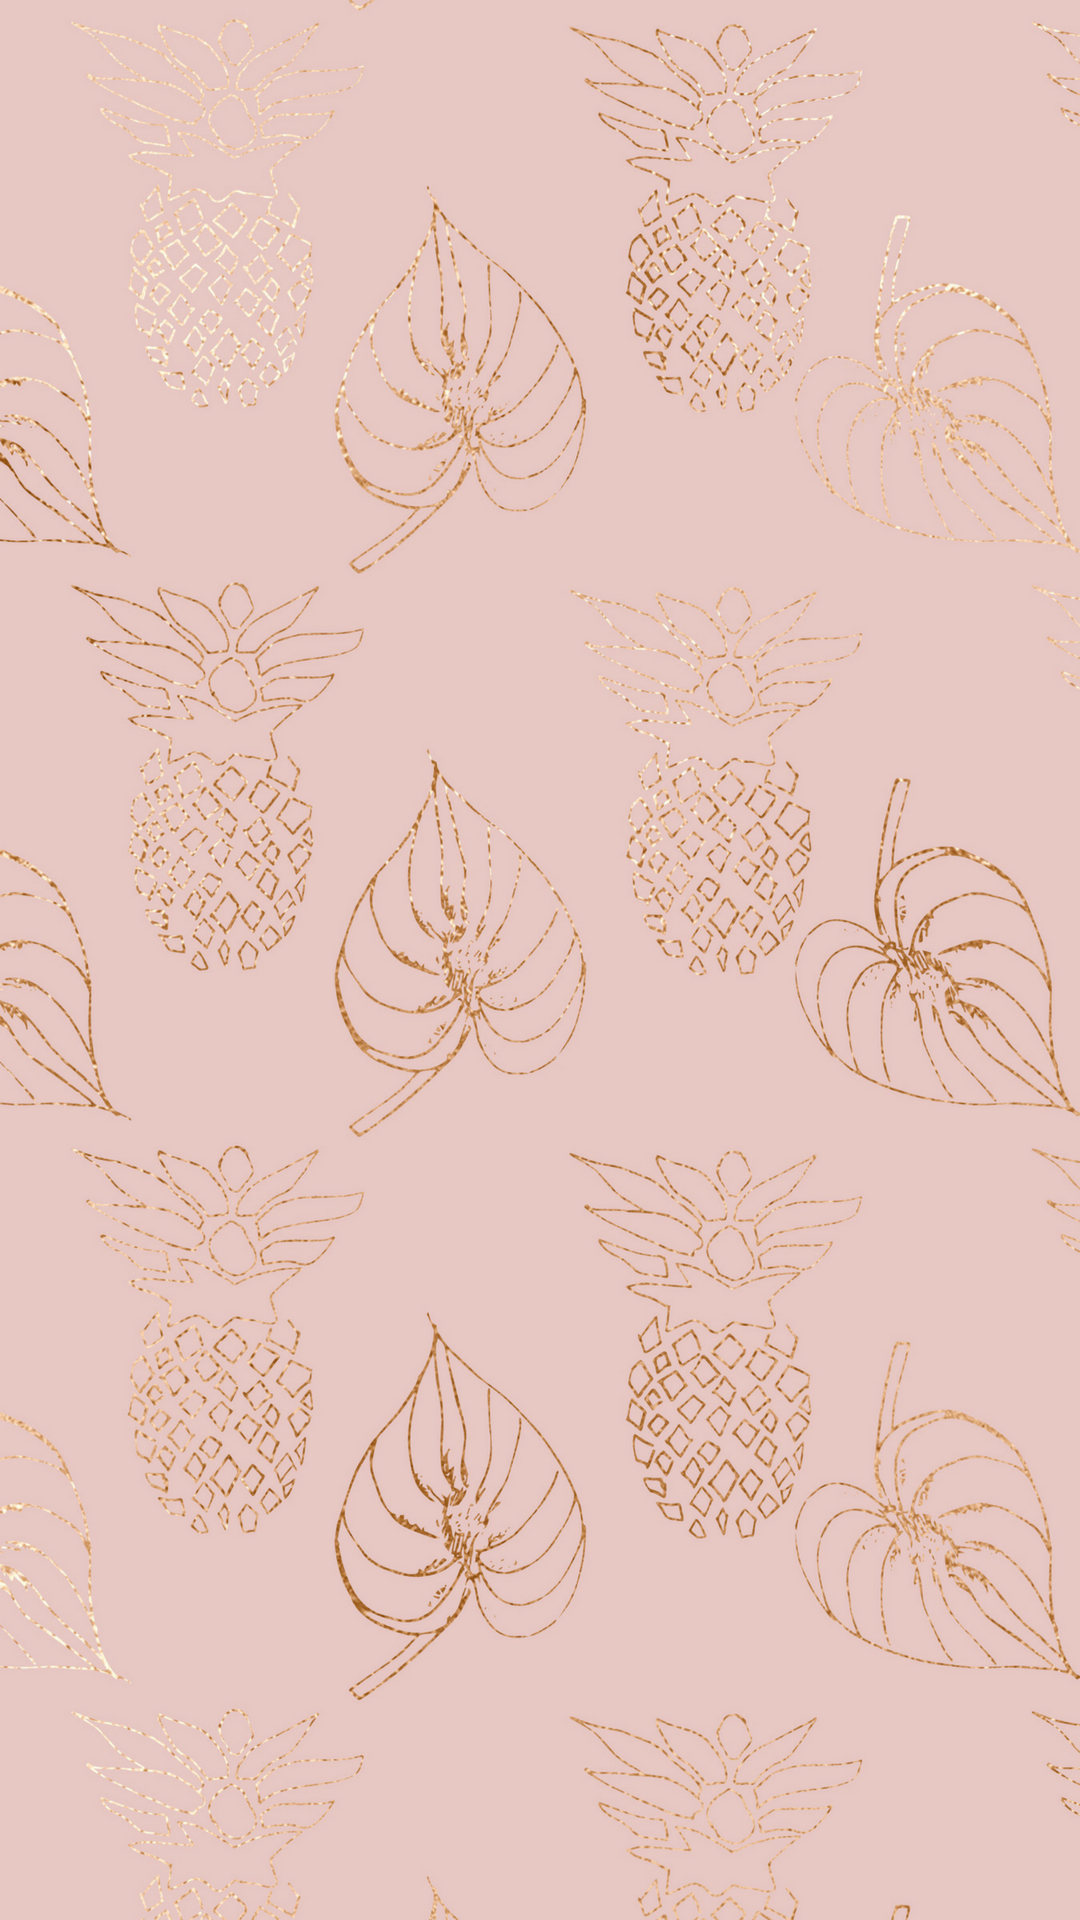 Pineapple Glam Smart Phone Wallpaper Png 1 080 1 920 Piks Gold Wallpaper Iphone Rose Gold Wallpaper Iphone Pink And Gold Wallpaper